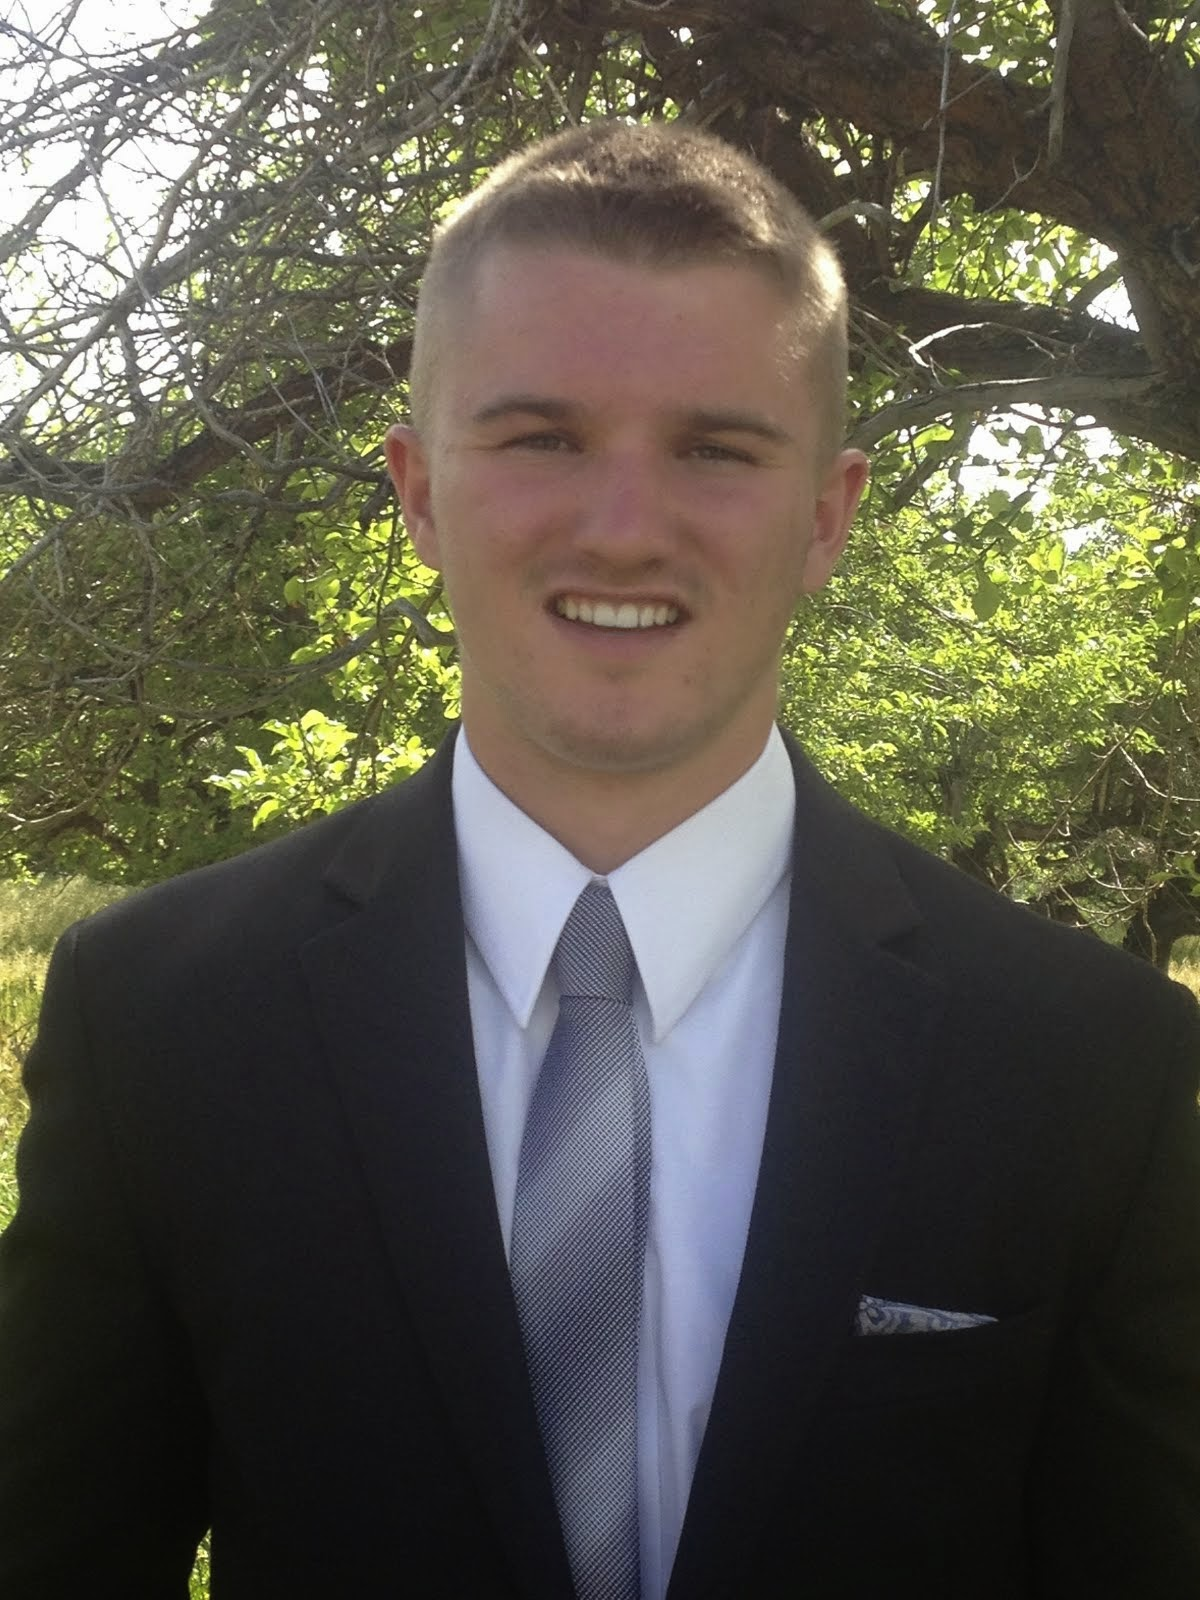 Elder Shane Cooley